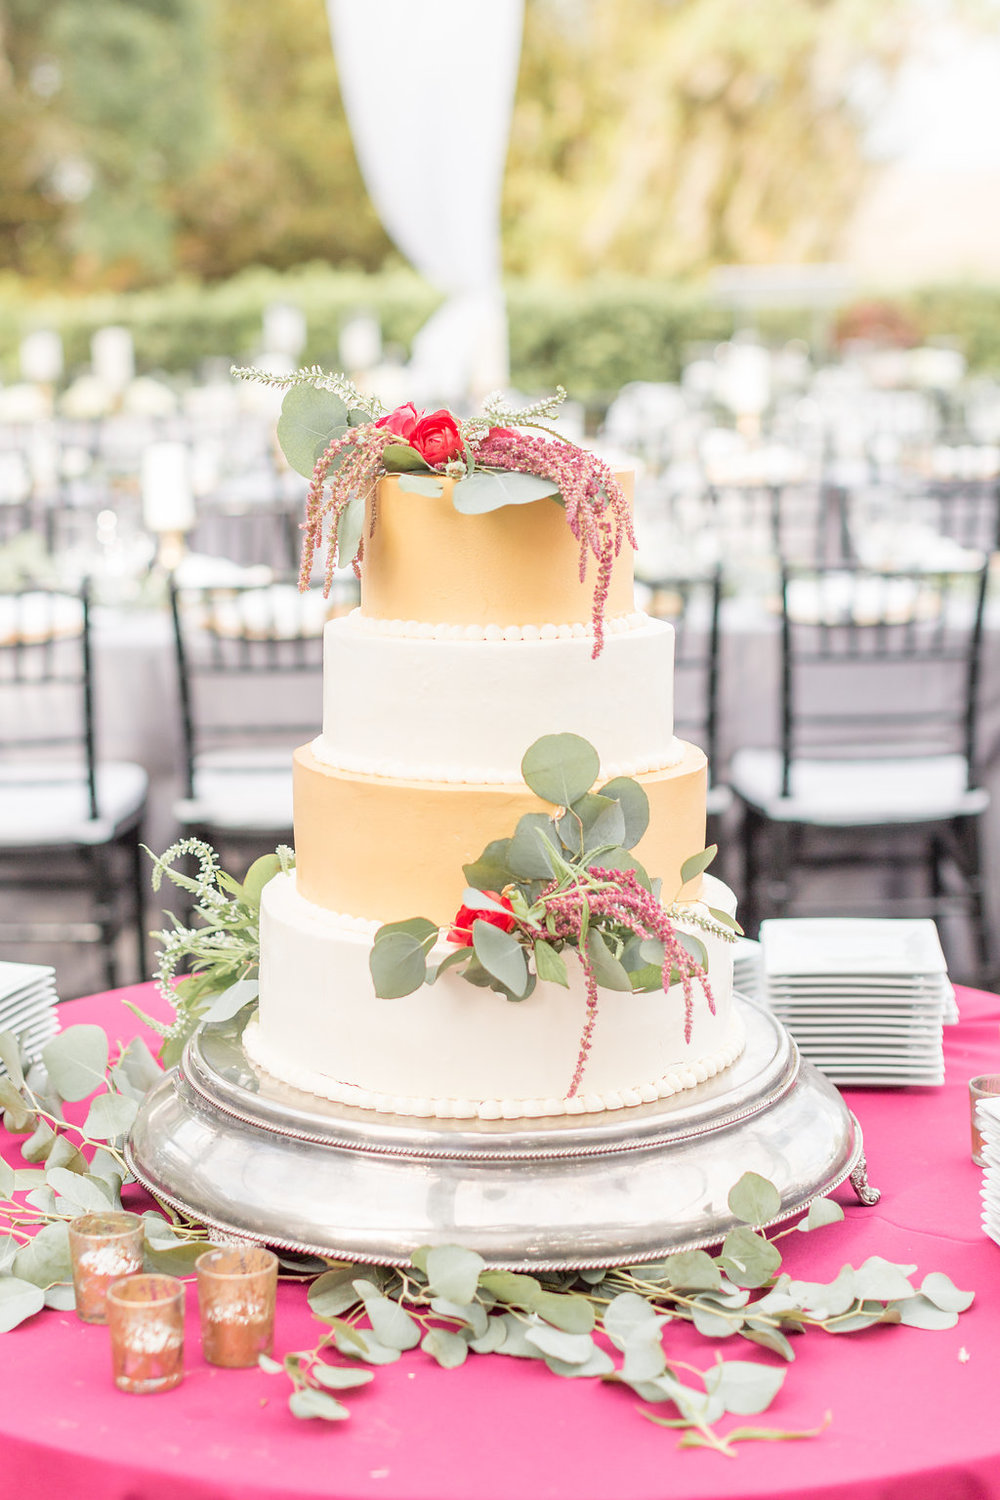 Gold and White Wedding Cake - Musgrove Plantation Georgia Wedding Venue